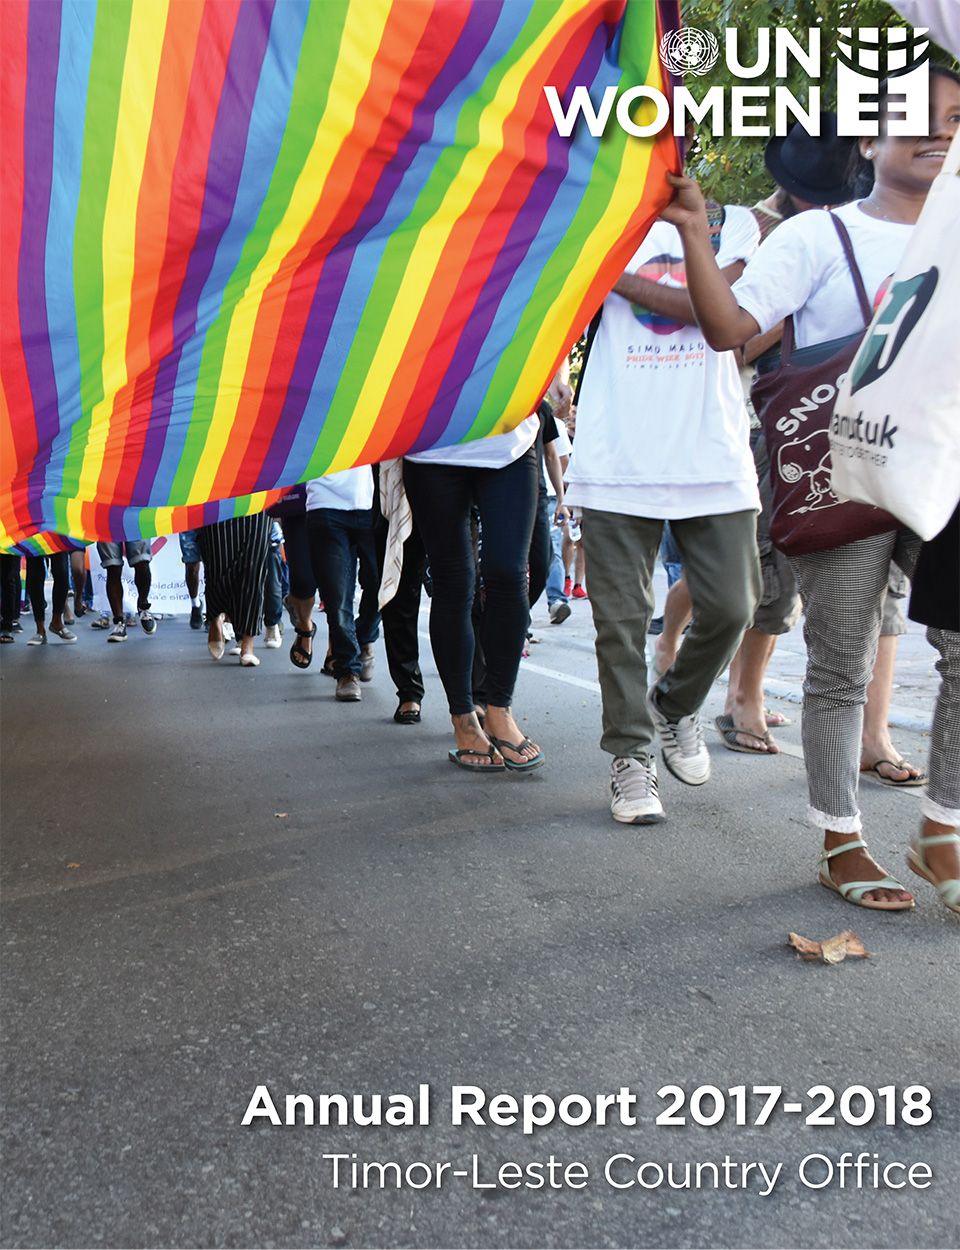 UN Women Timor-Leste Annual Report 2017-2018